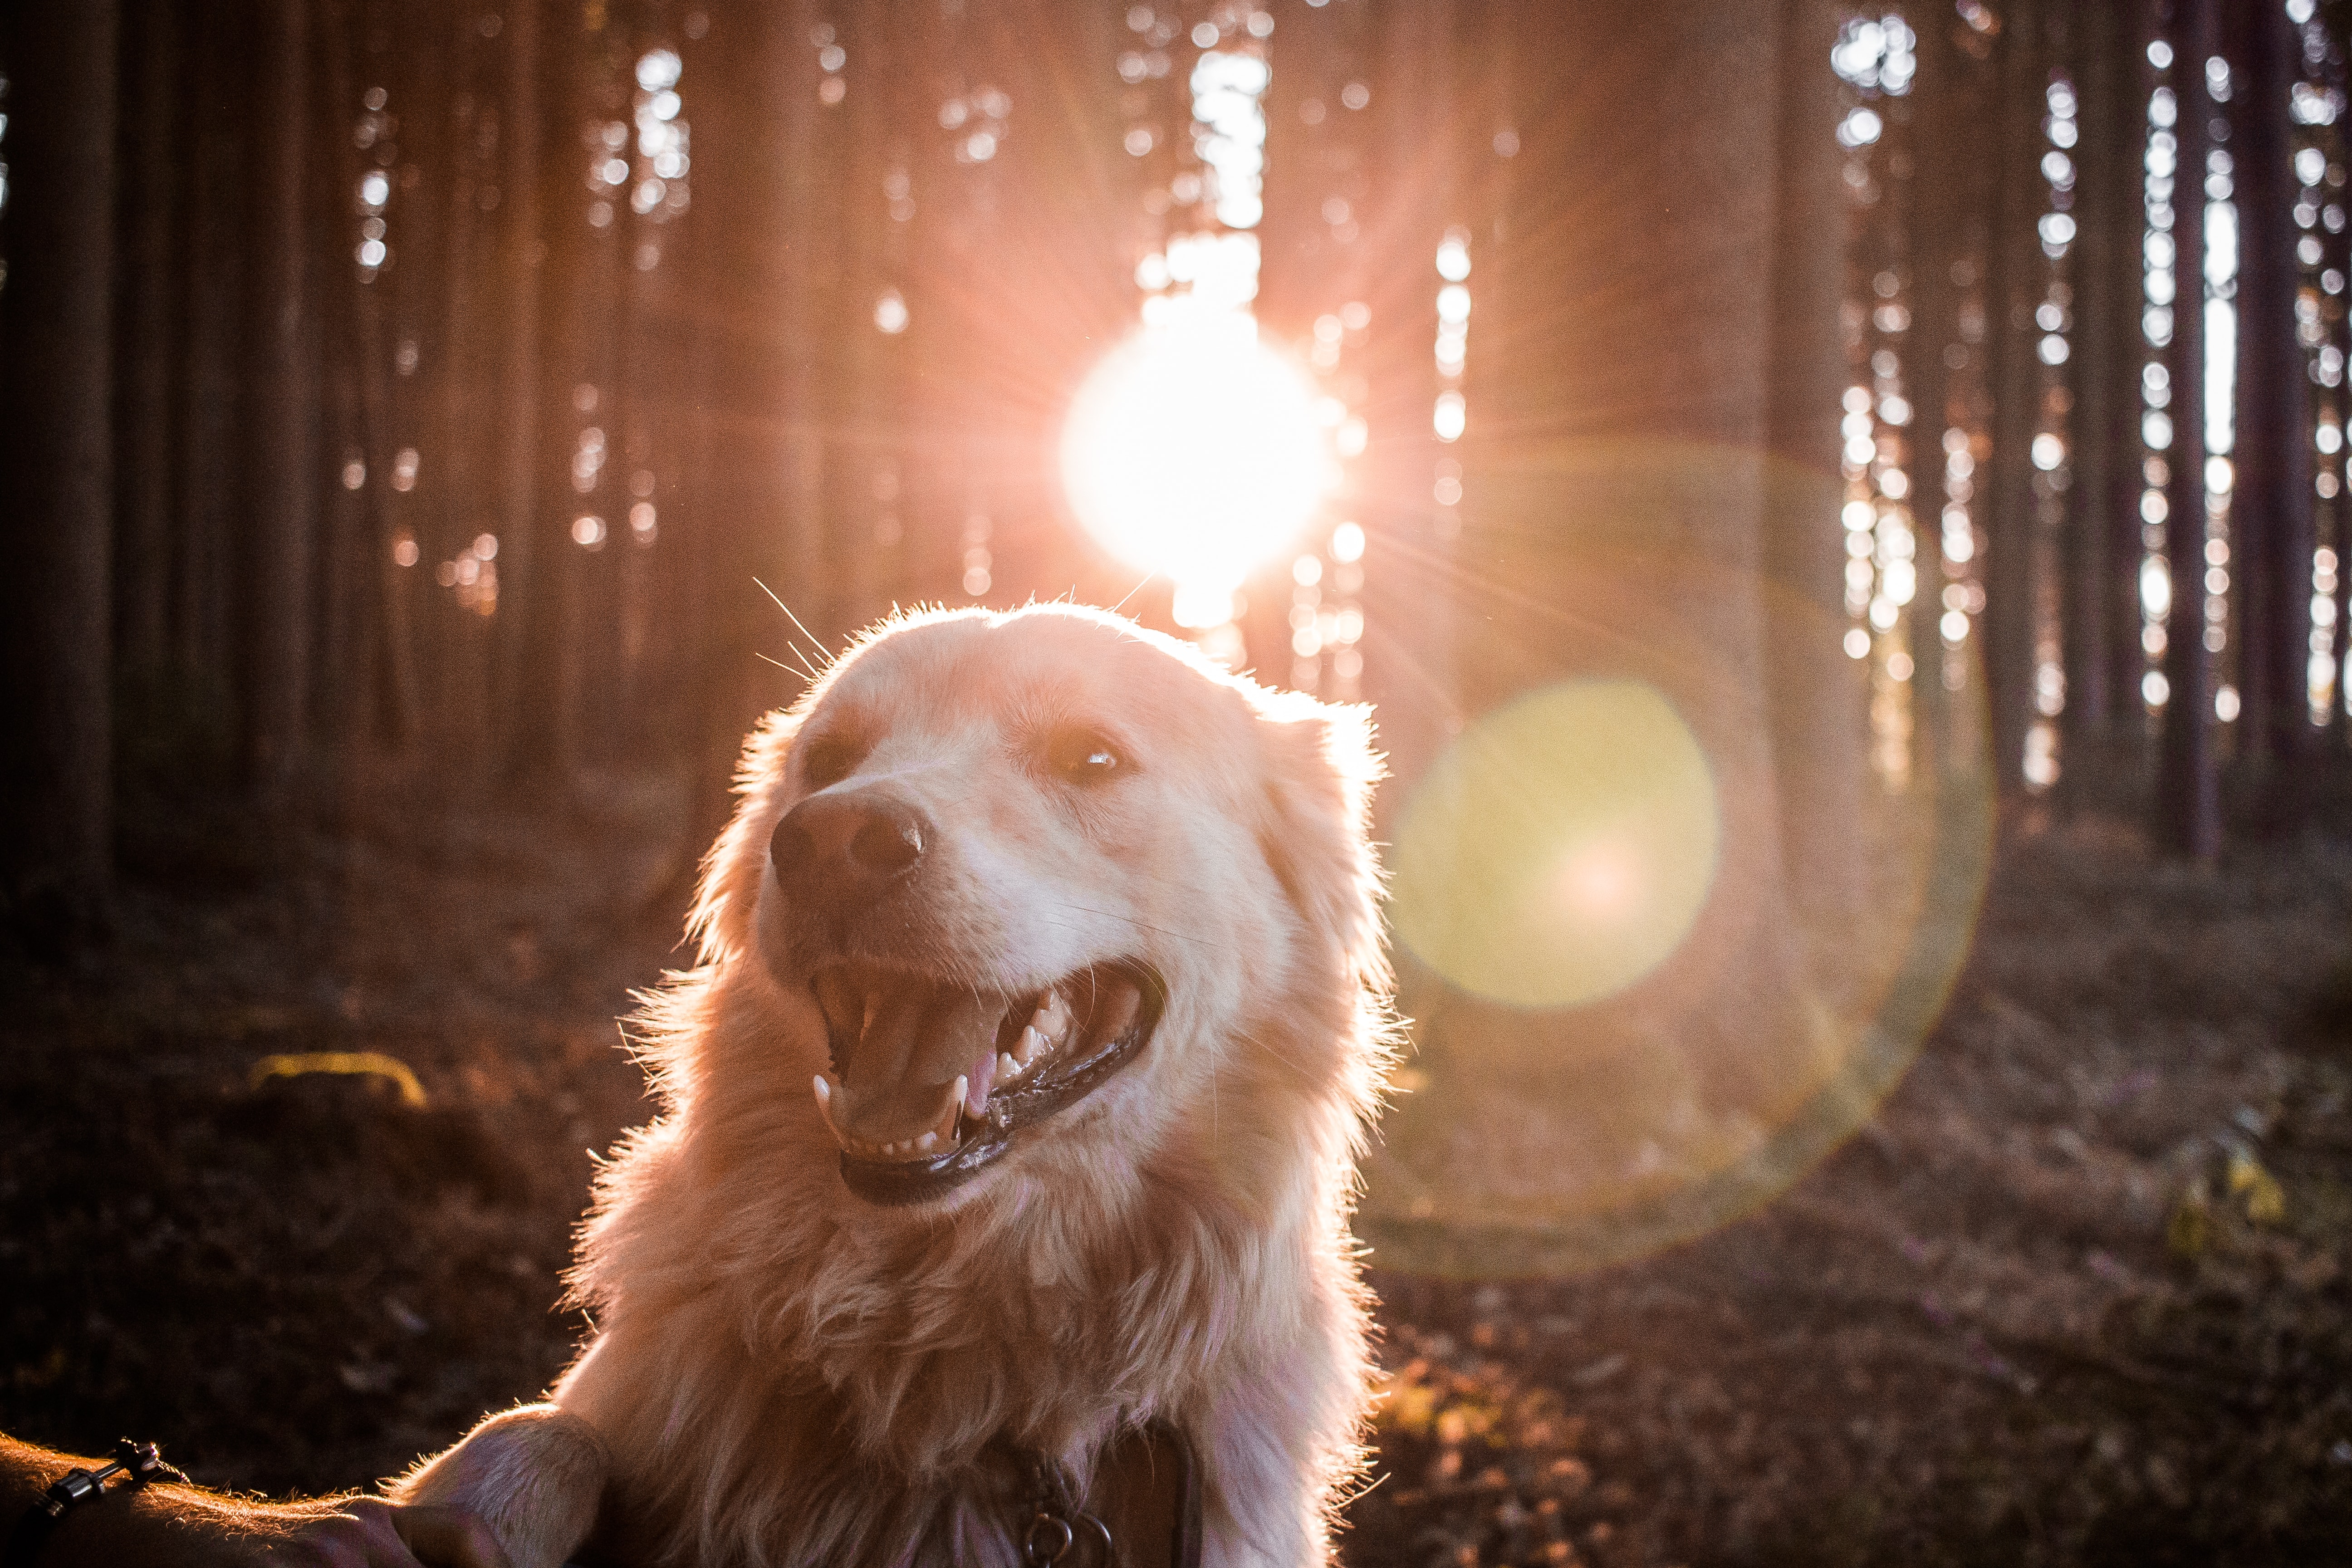 A painting golden retriever in a forest during sunset